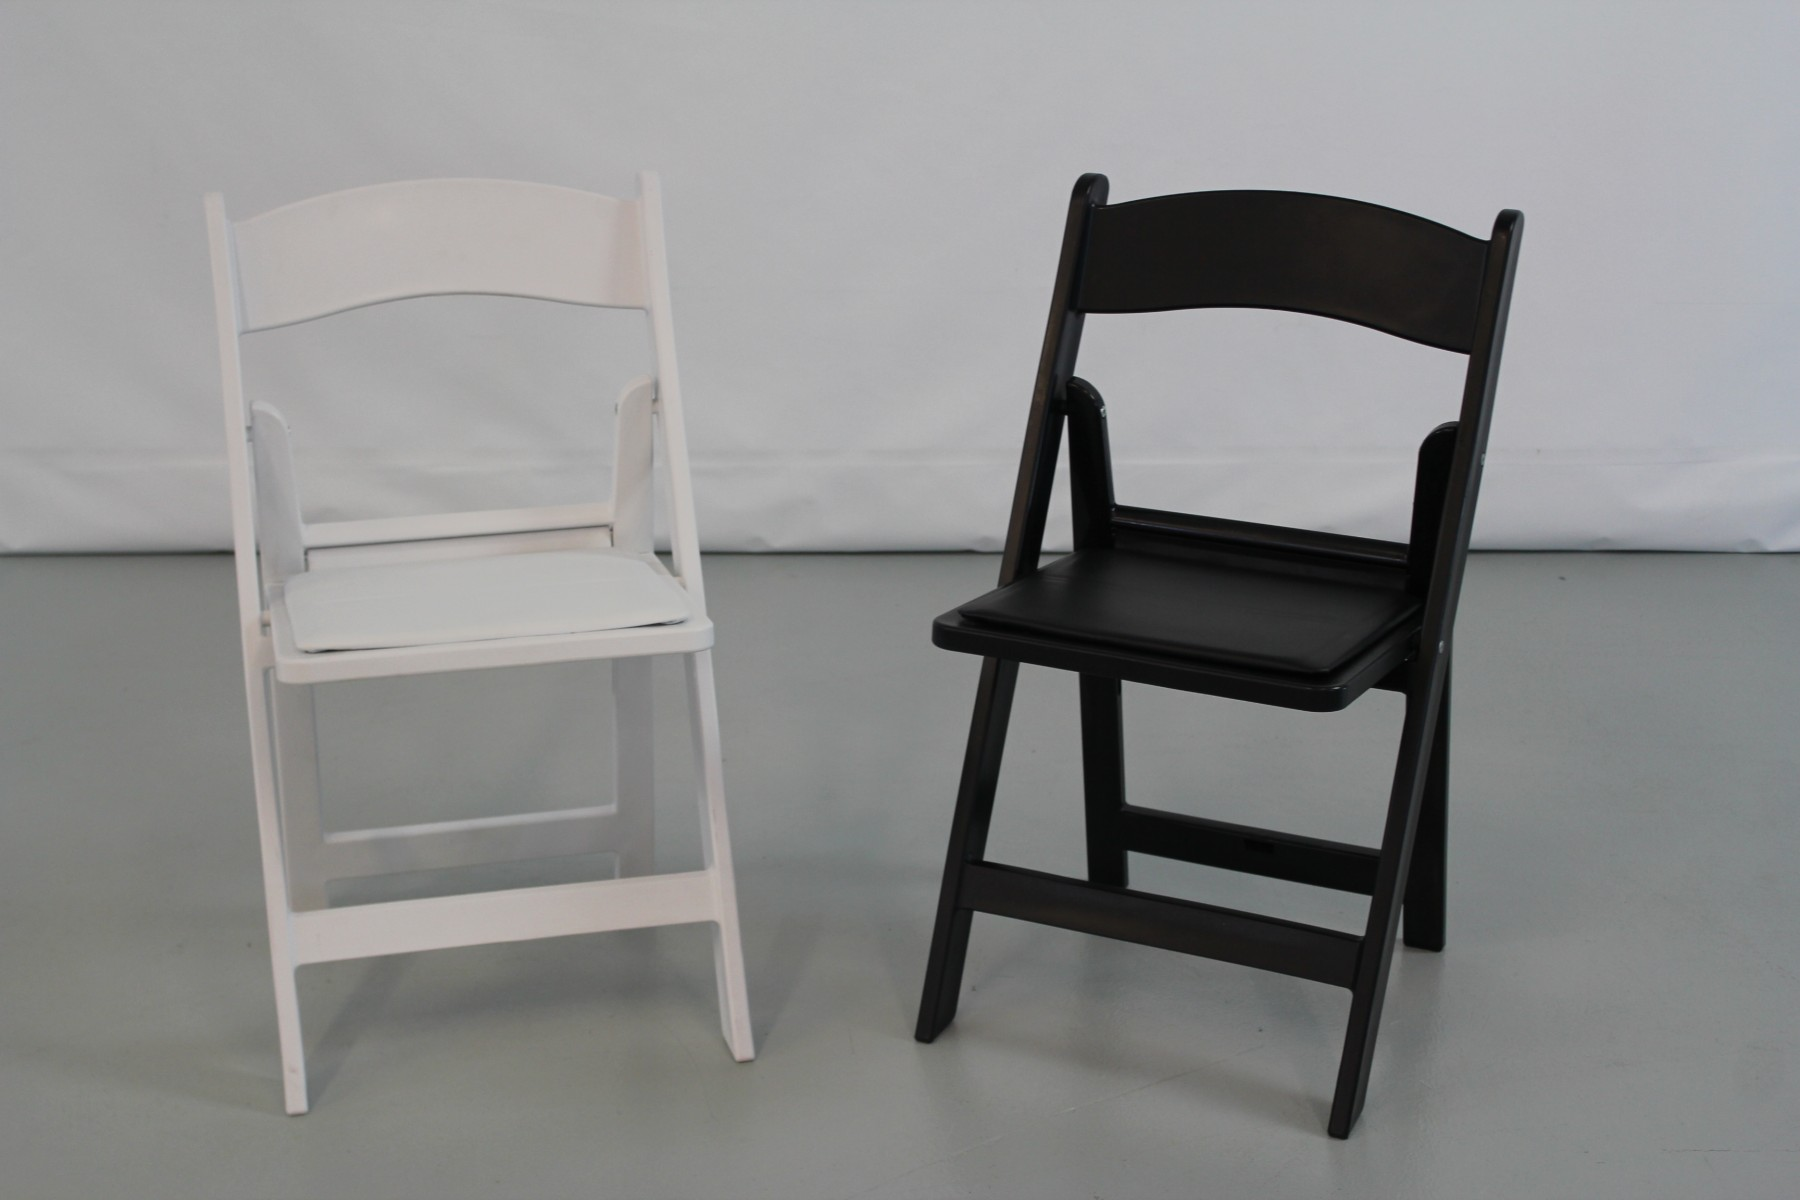 Where To Buy Folding Chairs Oxford White Resin Folding Chair Pallet Folding Chairs